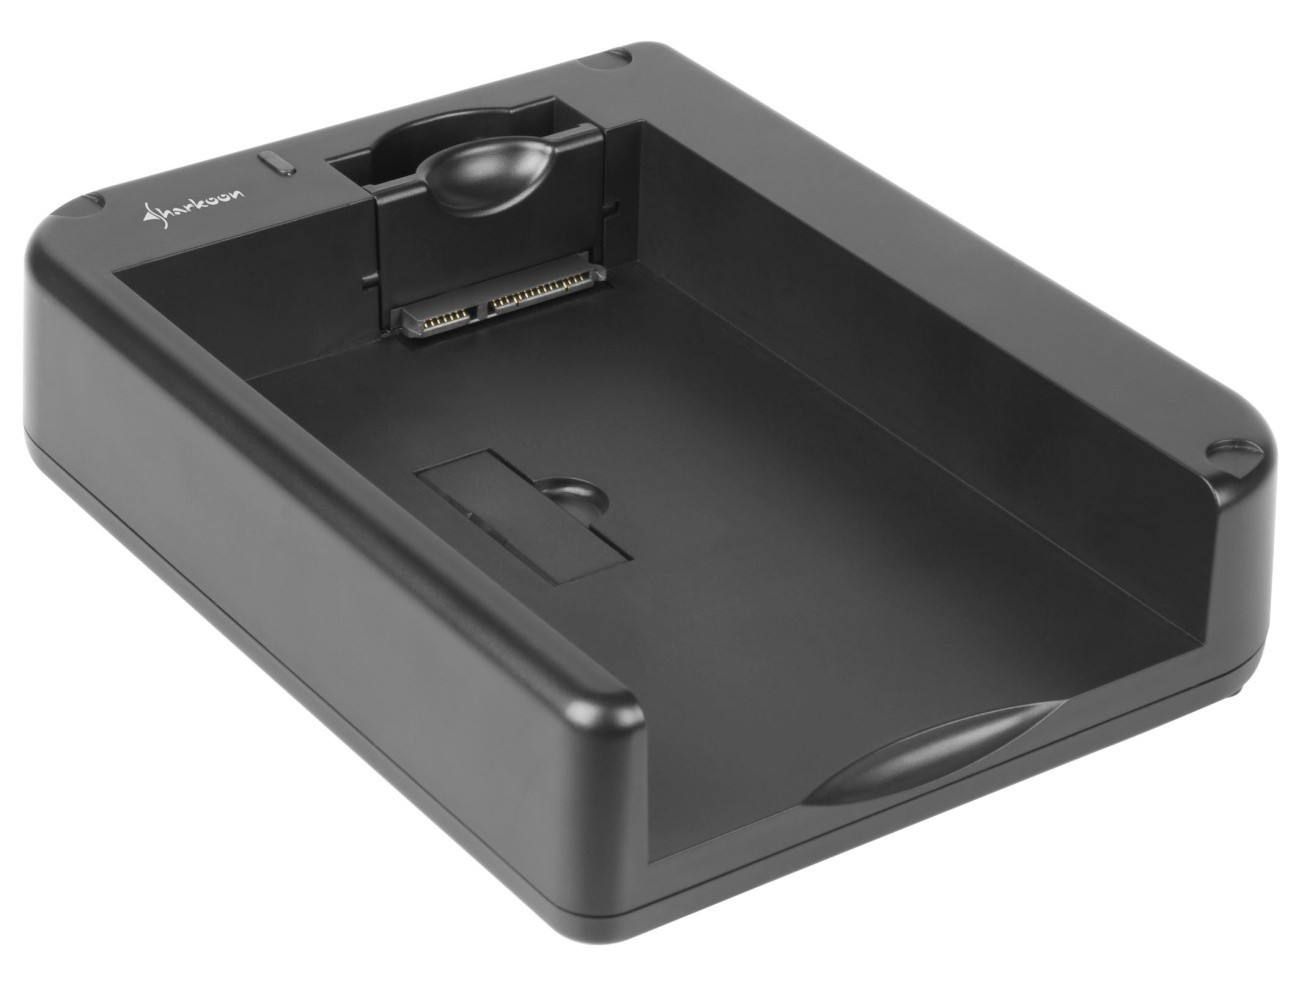 sharkoon_unveils_stackable_changing_station_for_sata_hard_drives